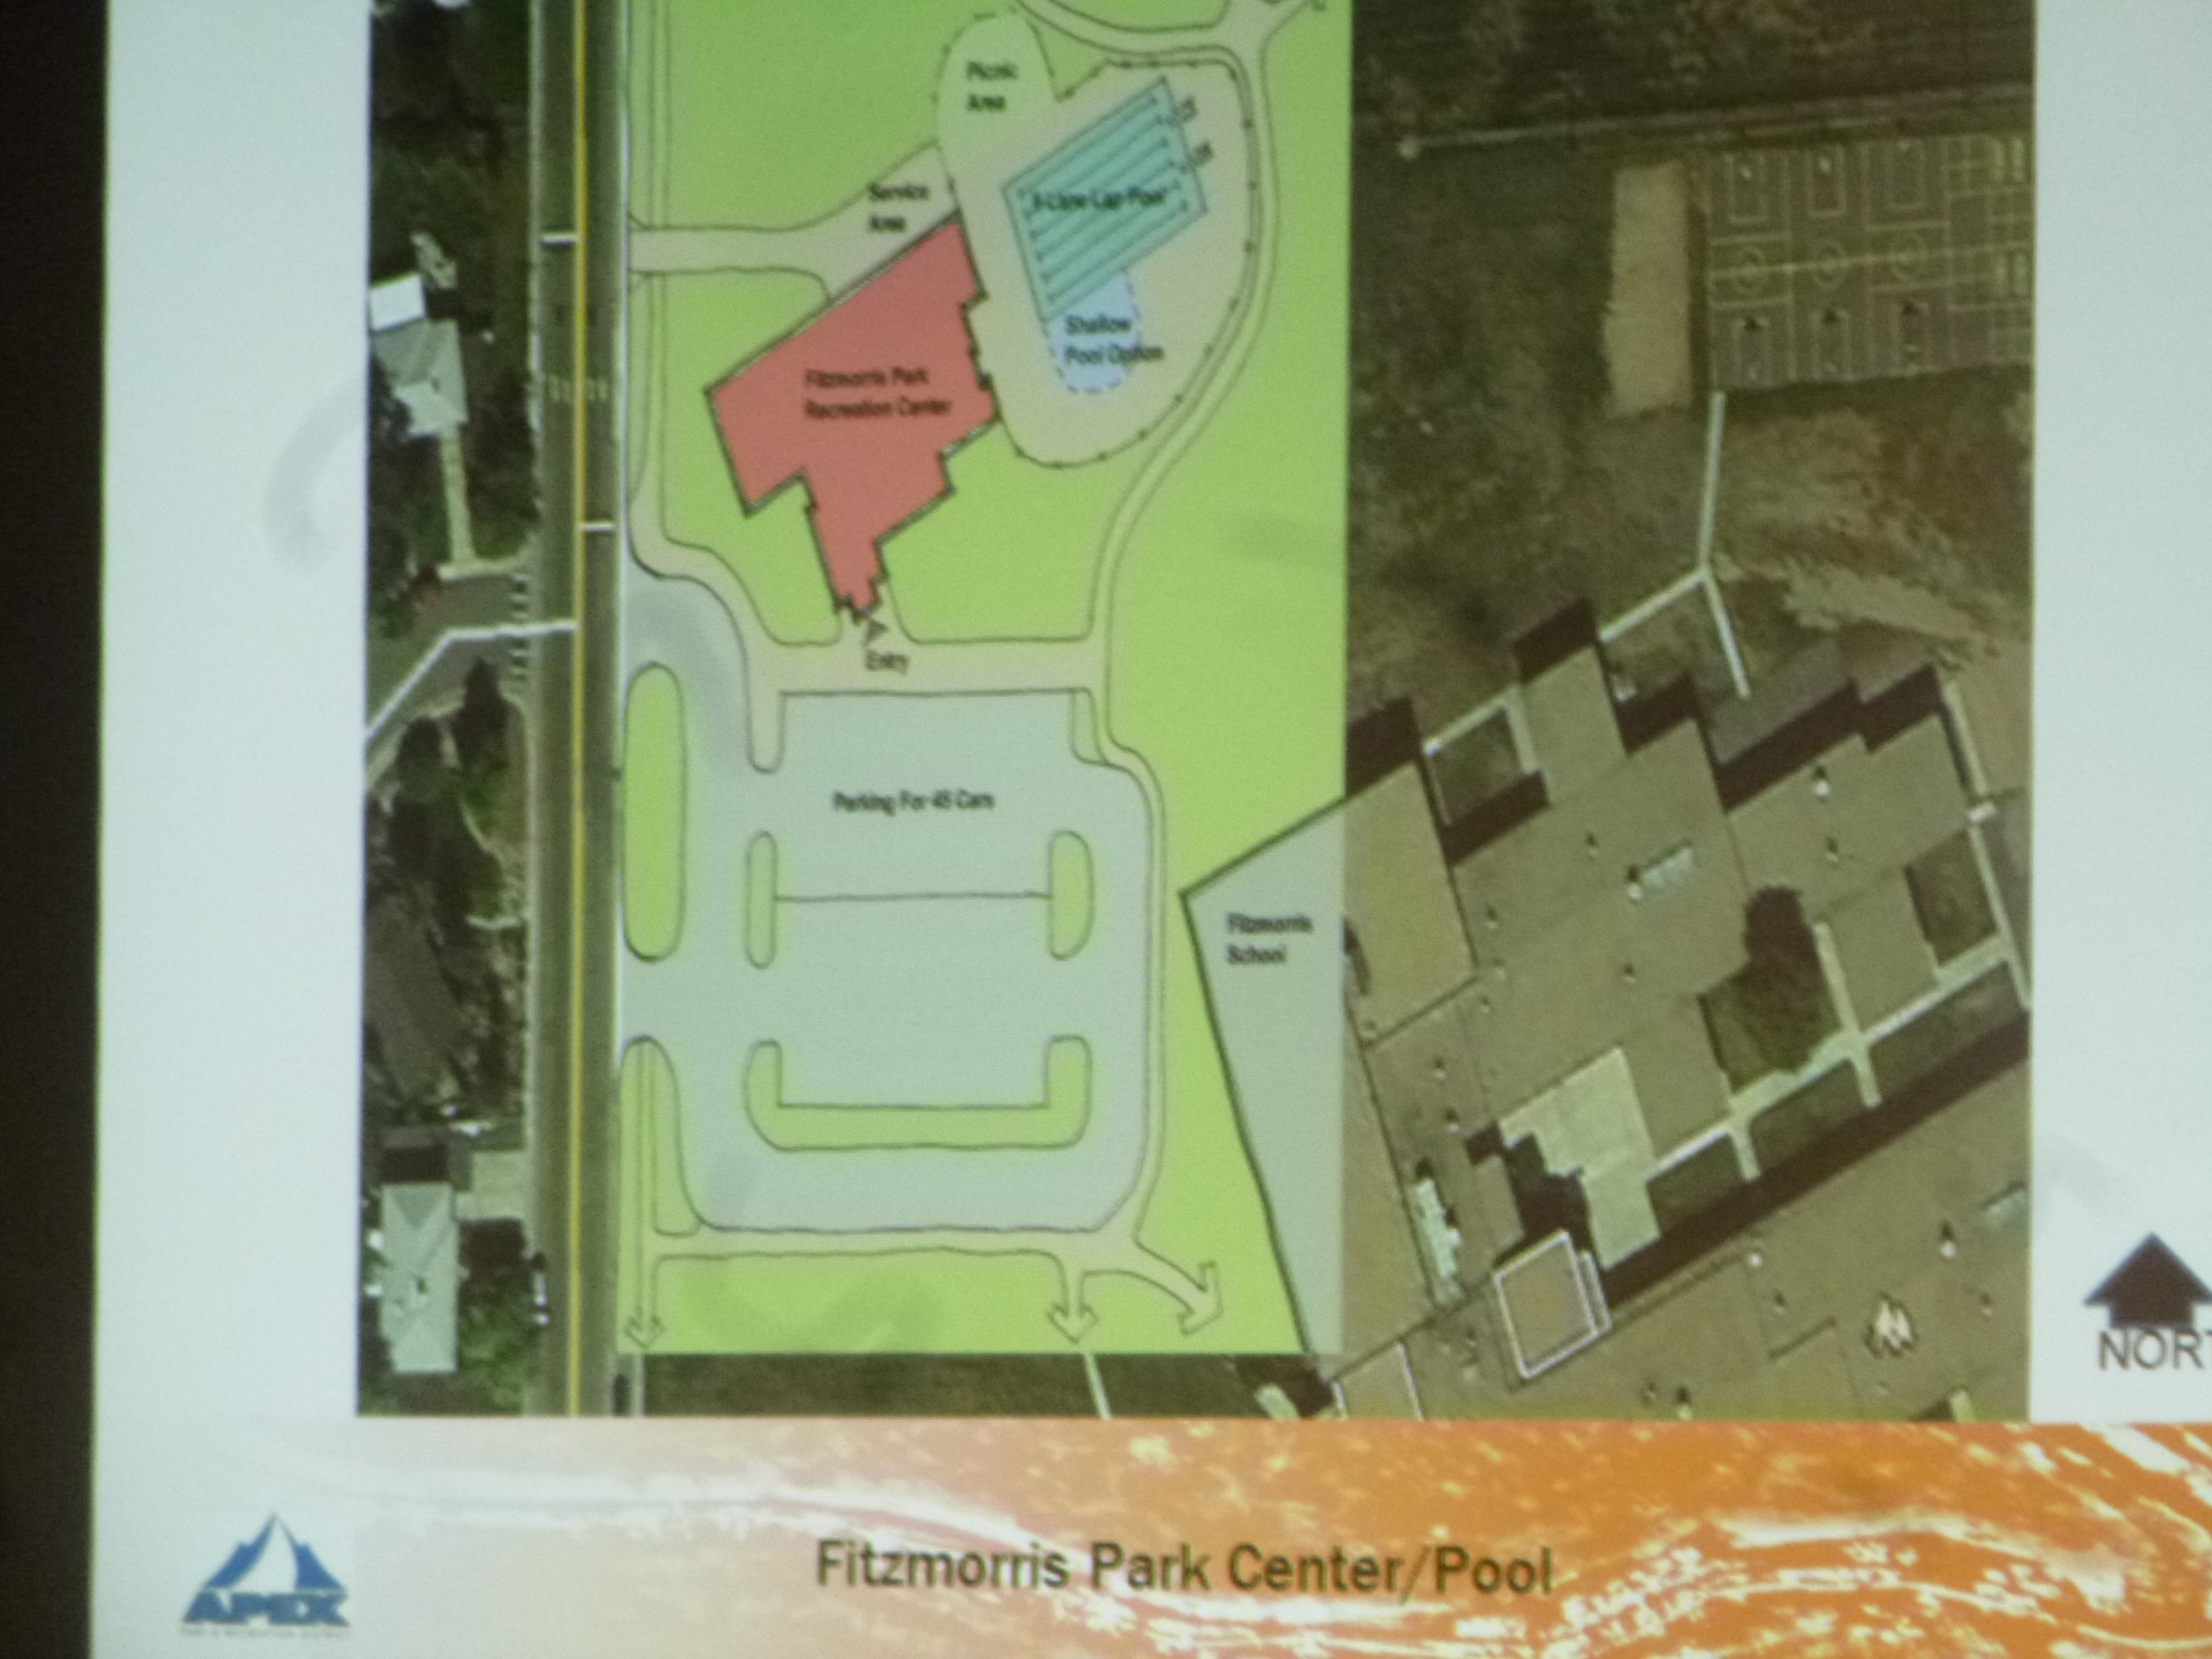 Apex To Present Fitzmorris Pool Plans For Public Input On September 3rd Clrc Arvada News And